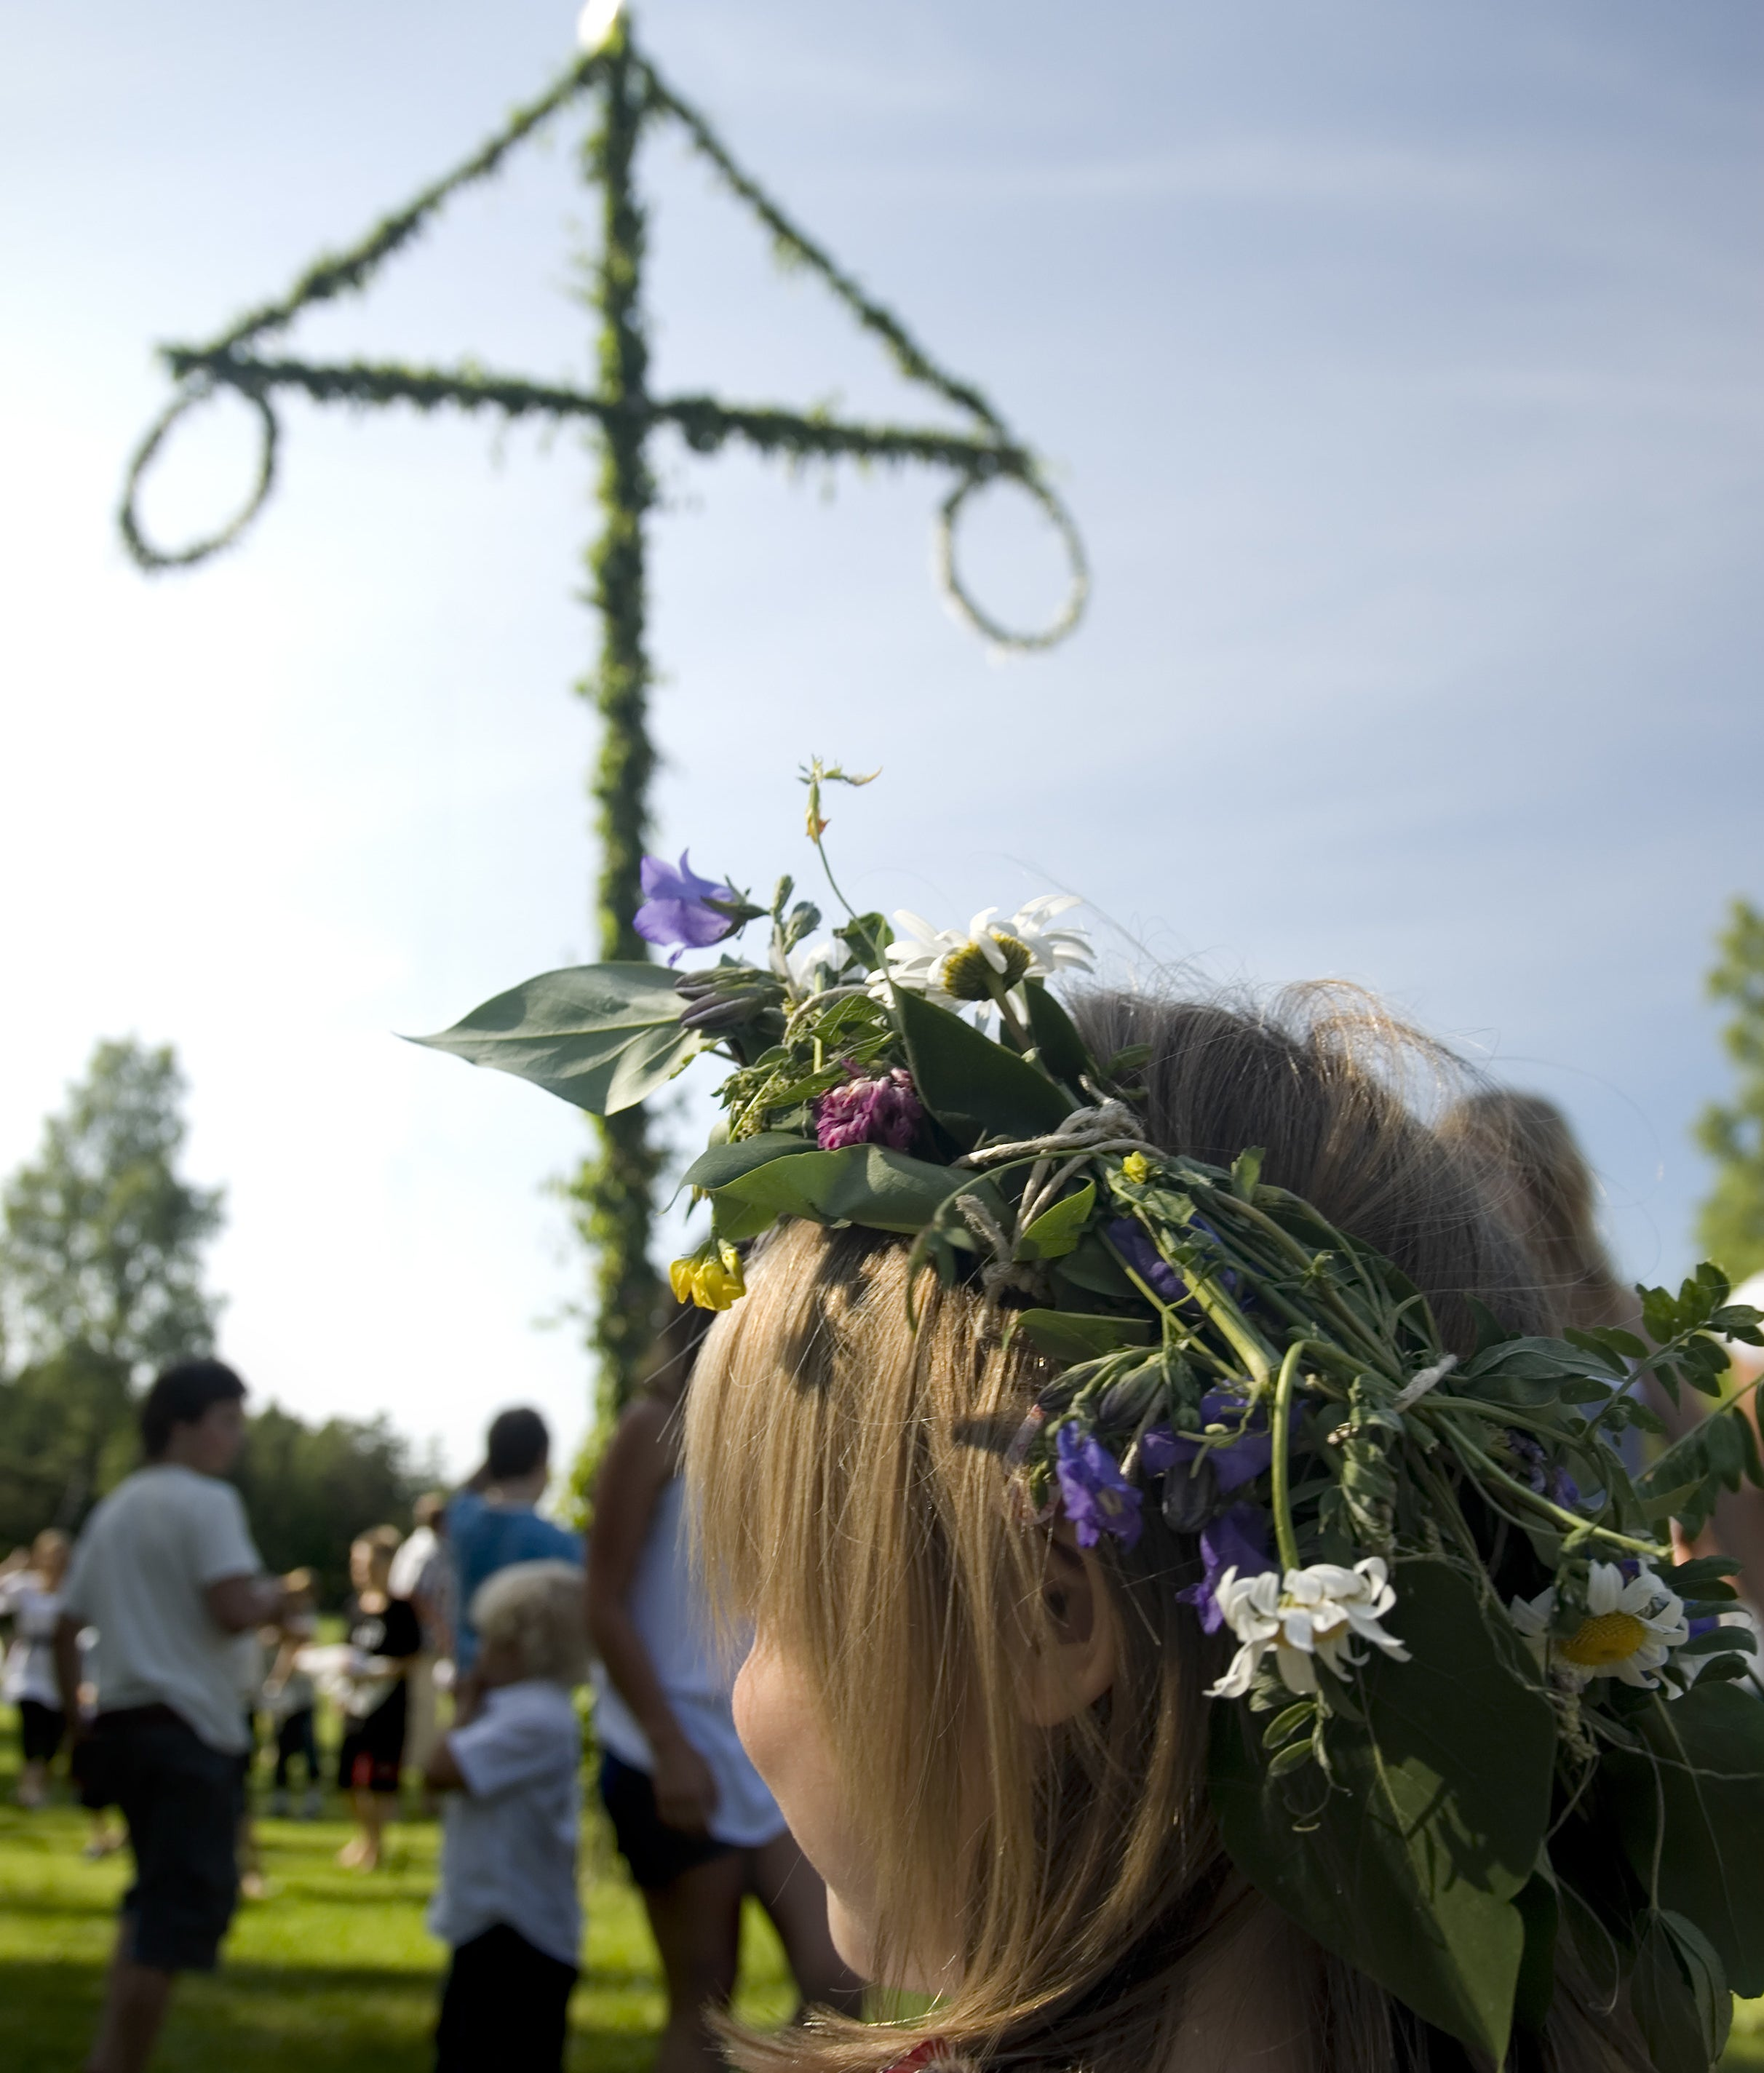 The back of a girl's head, showing her flower crown, with a maypole in the background